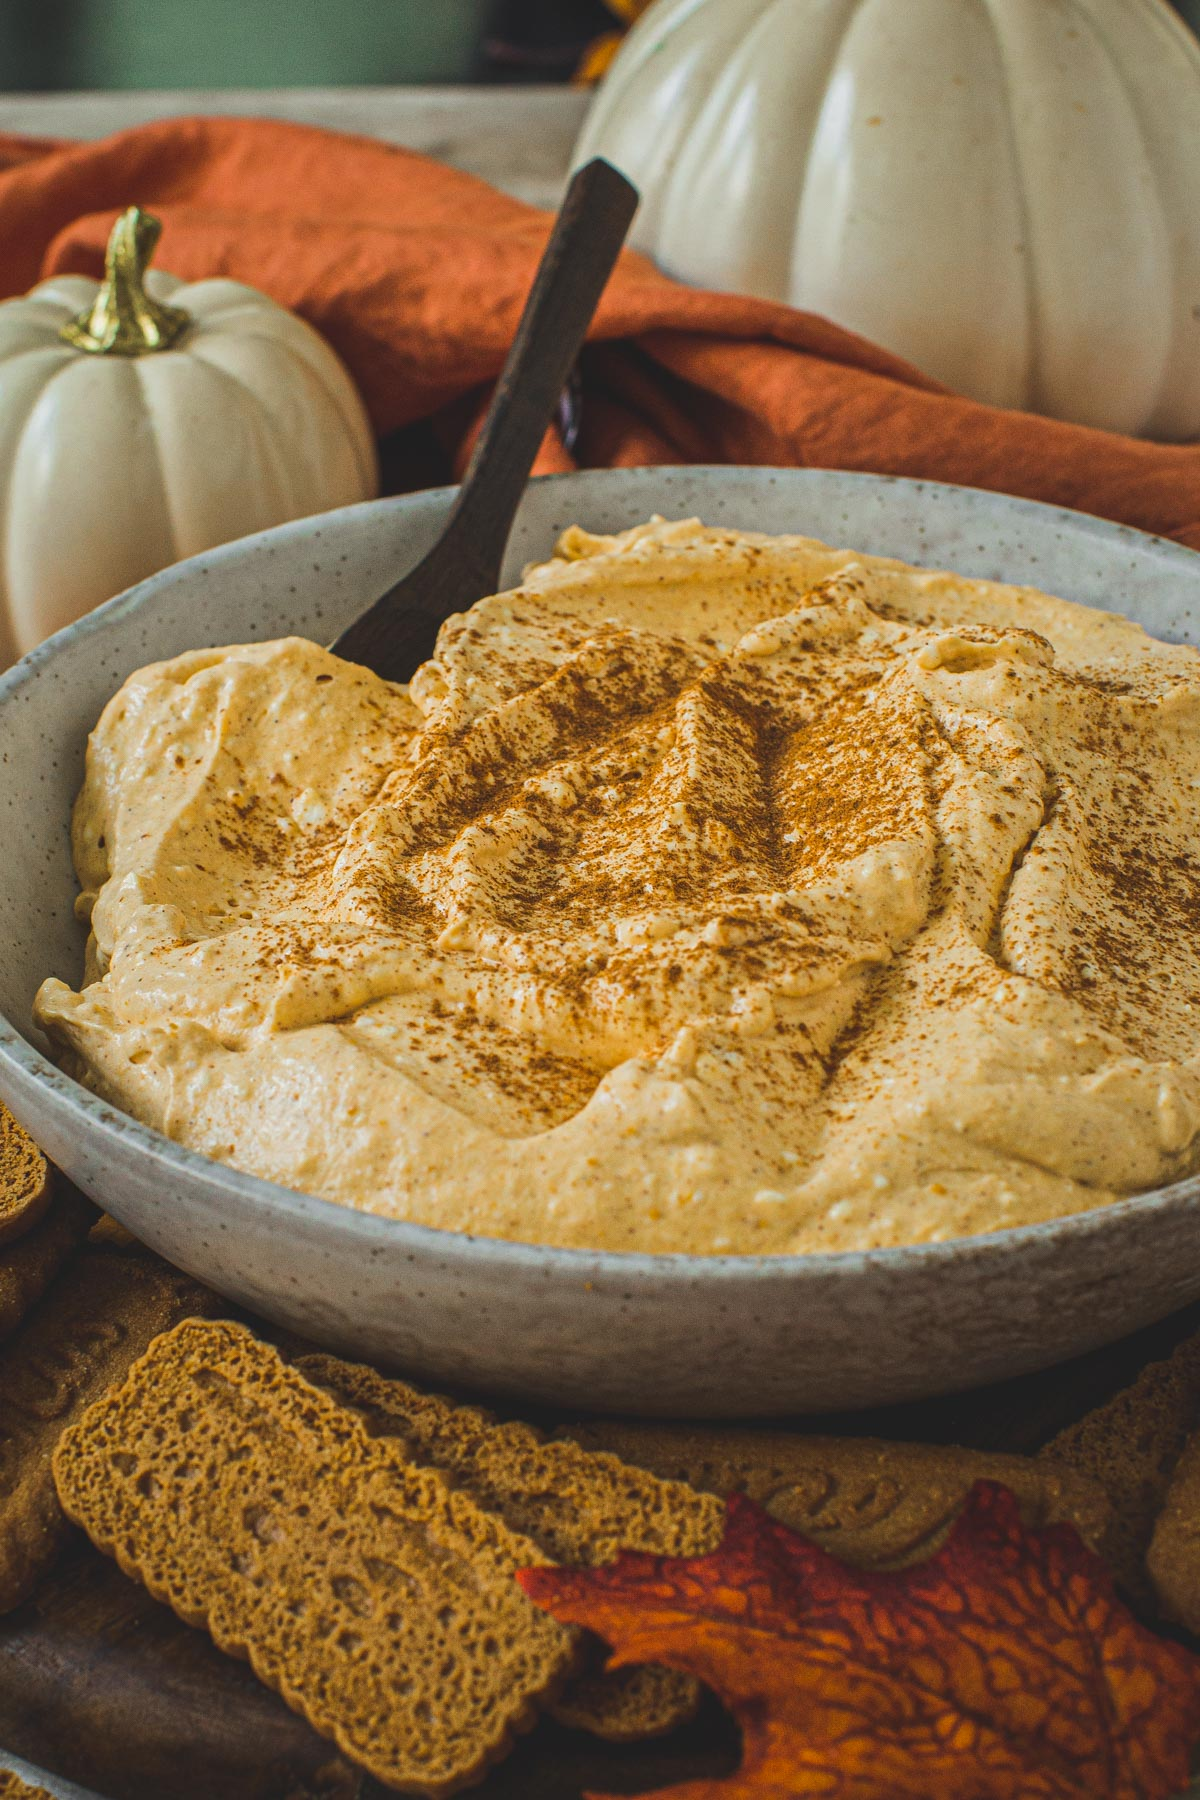 Pumpkin pie cheesecake dip topped with cinnamon in a bowl with a wooden spoon.